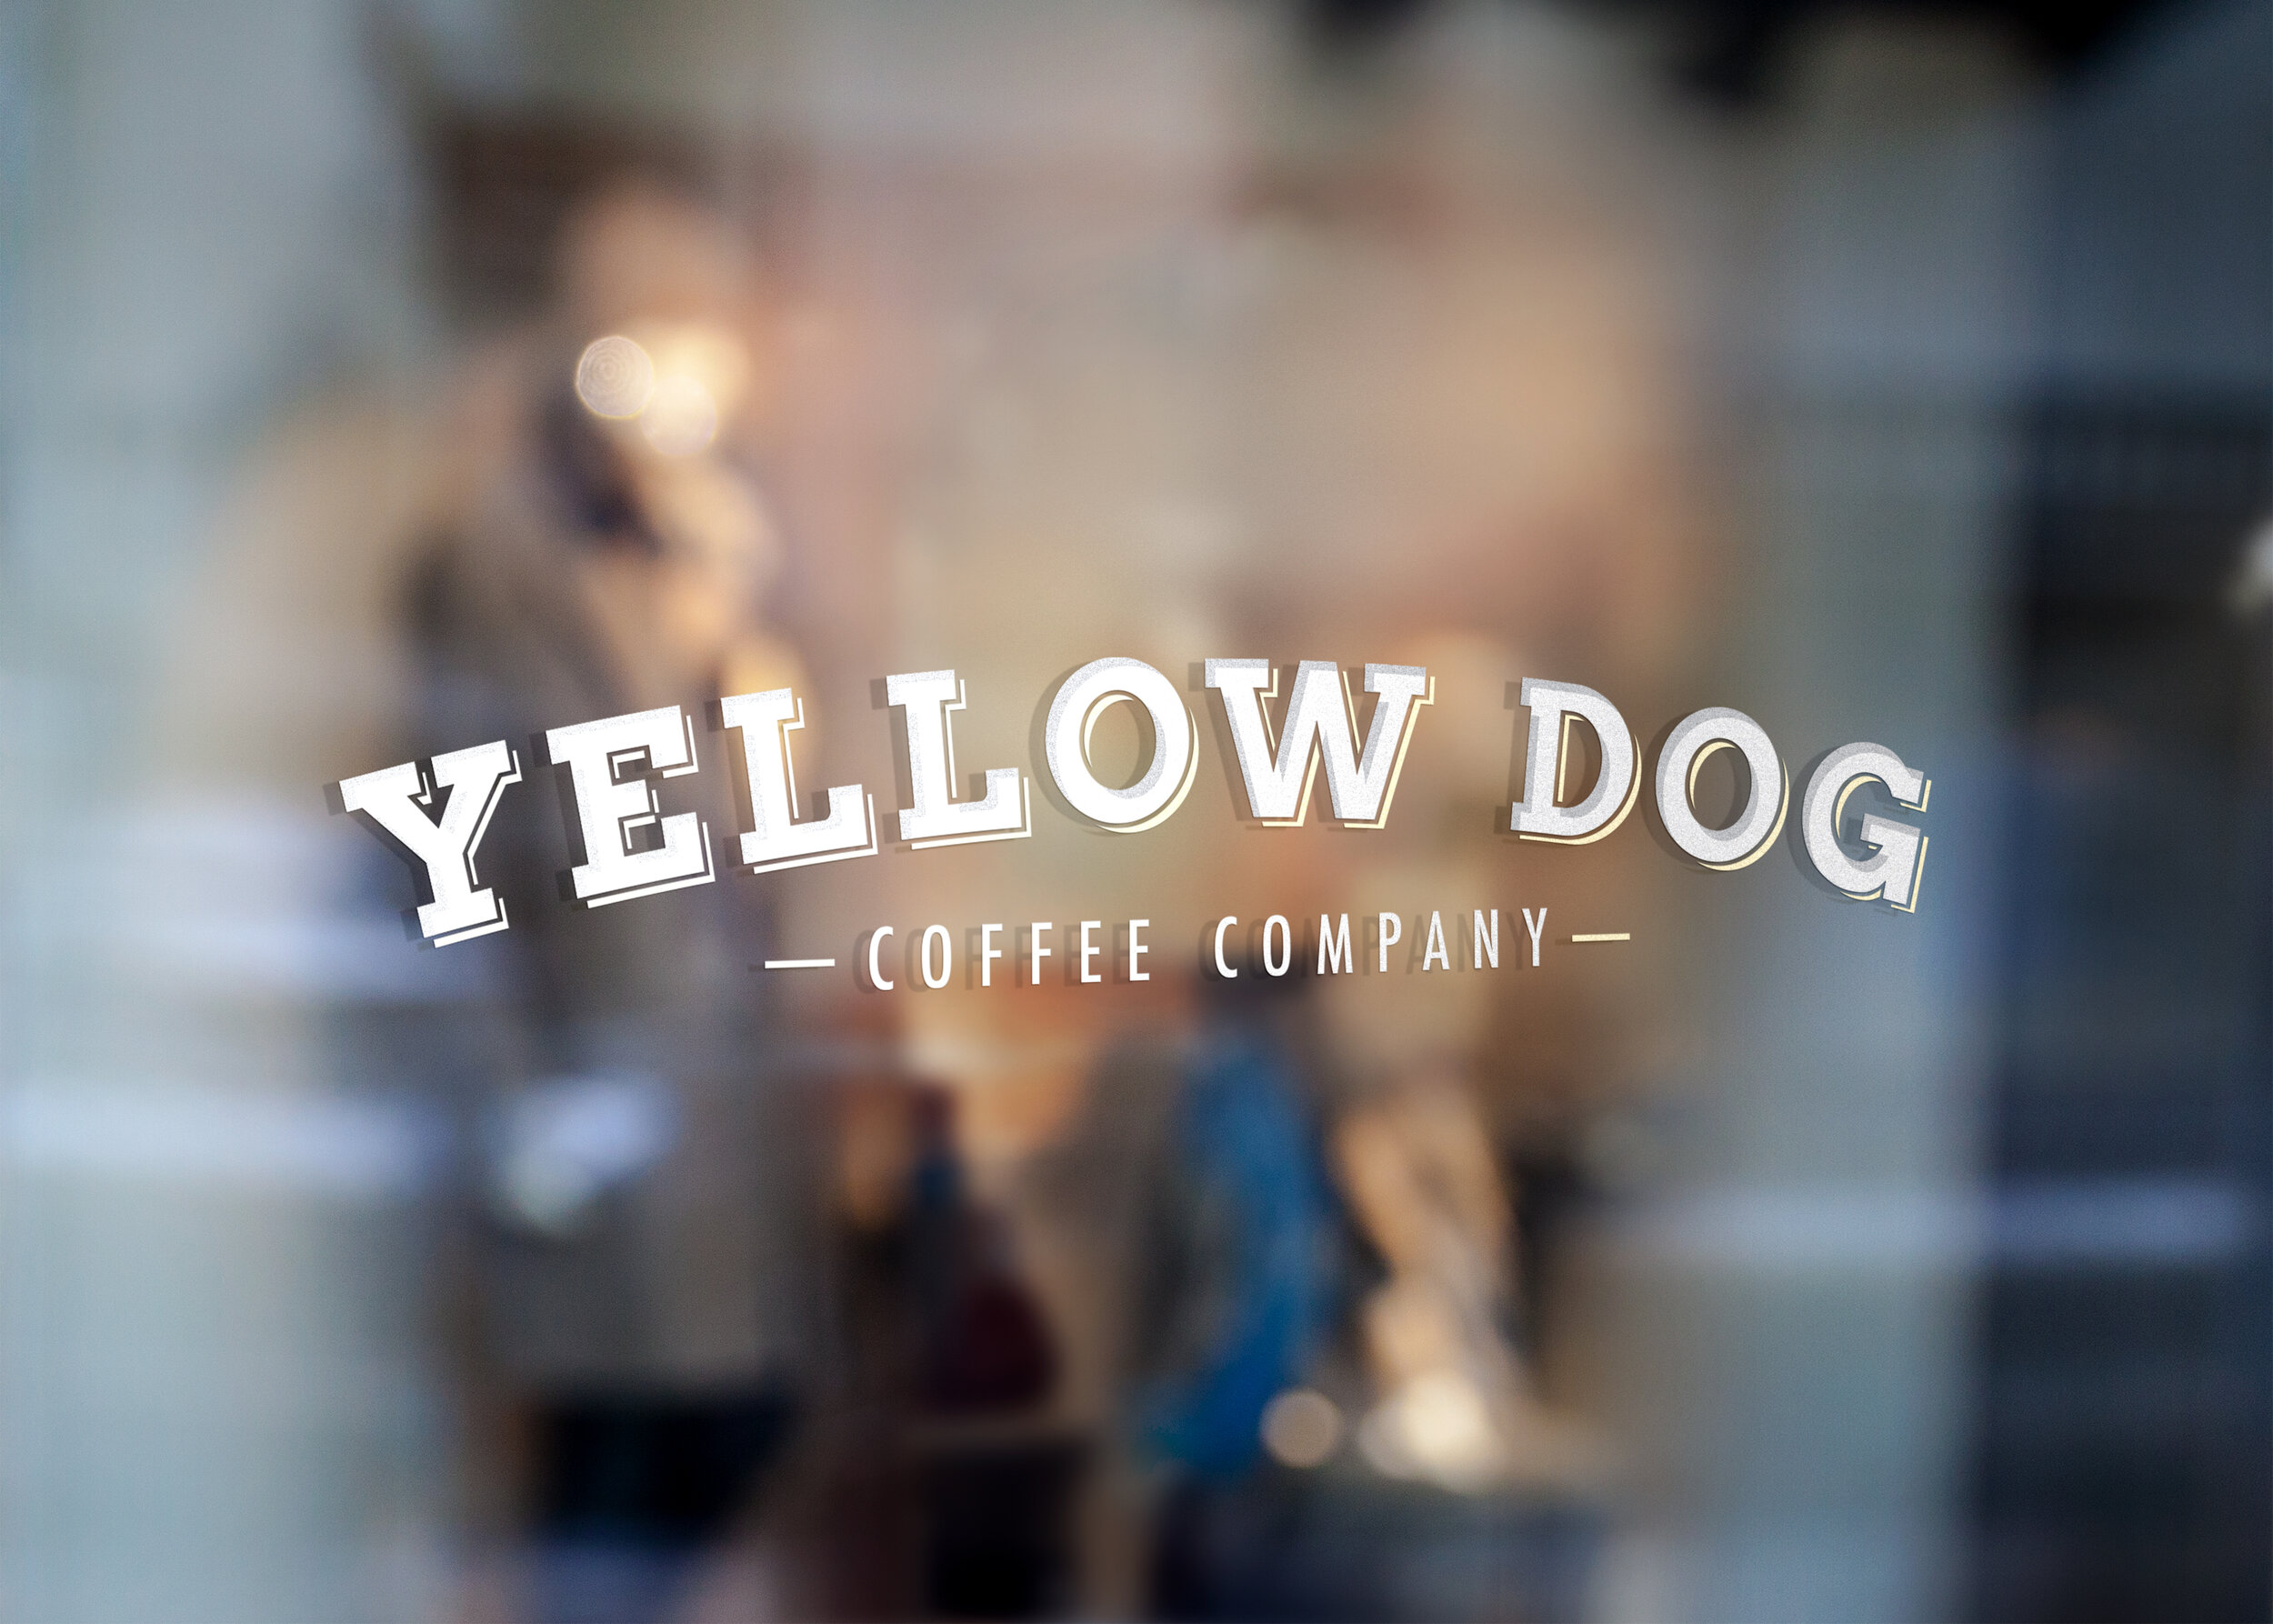 Yellow Dog Coffee Company | Branding & Identity, Logo Design, Website, Menu Design